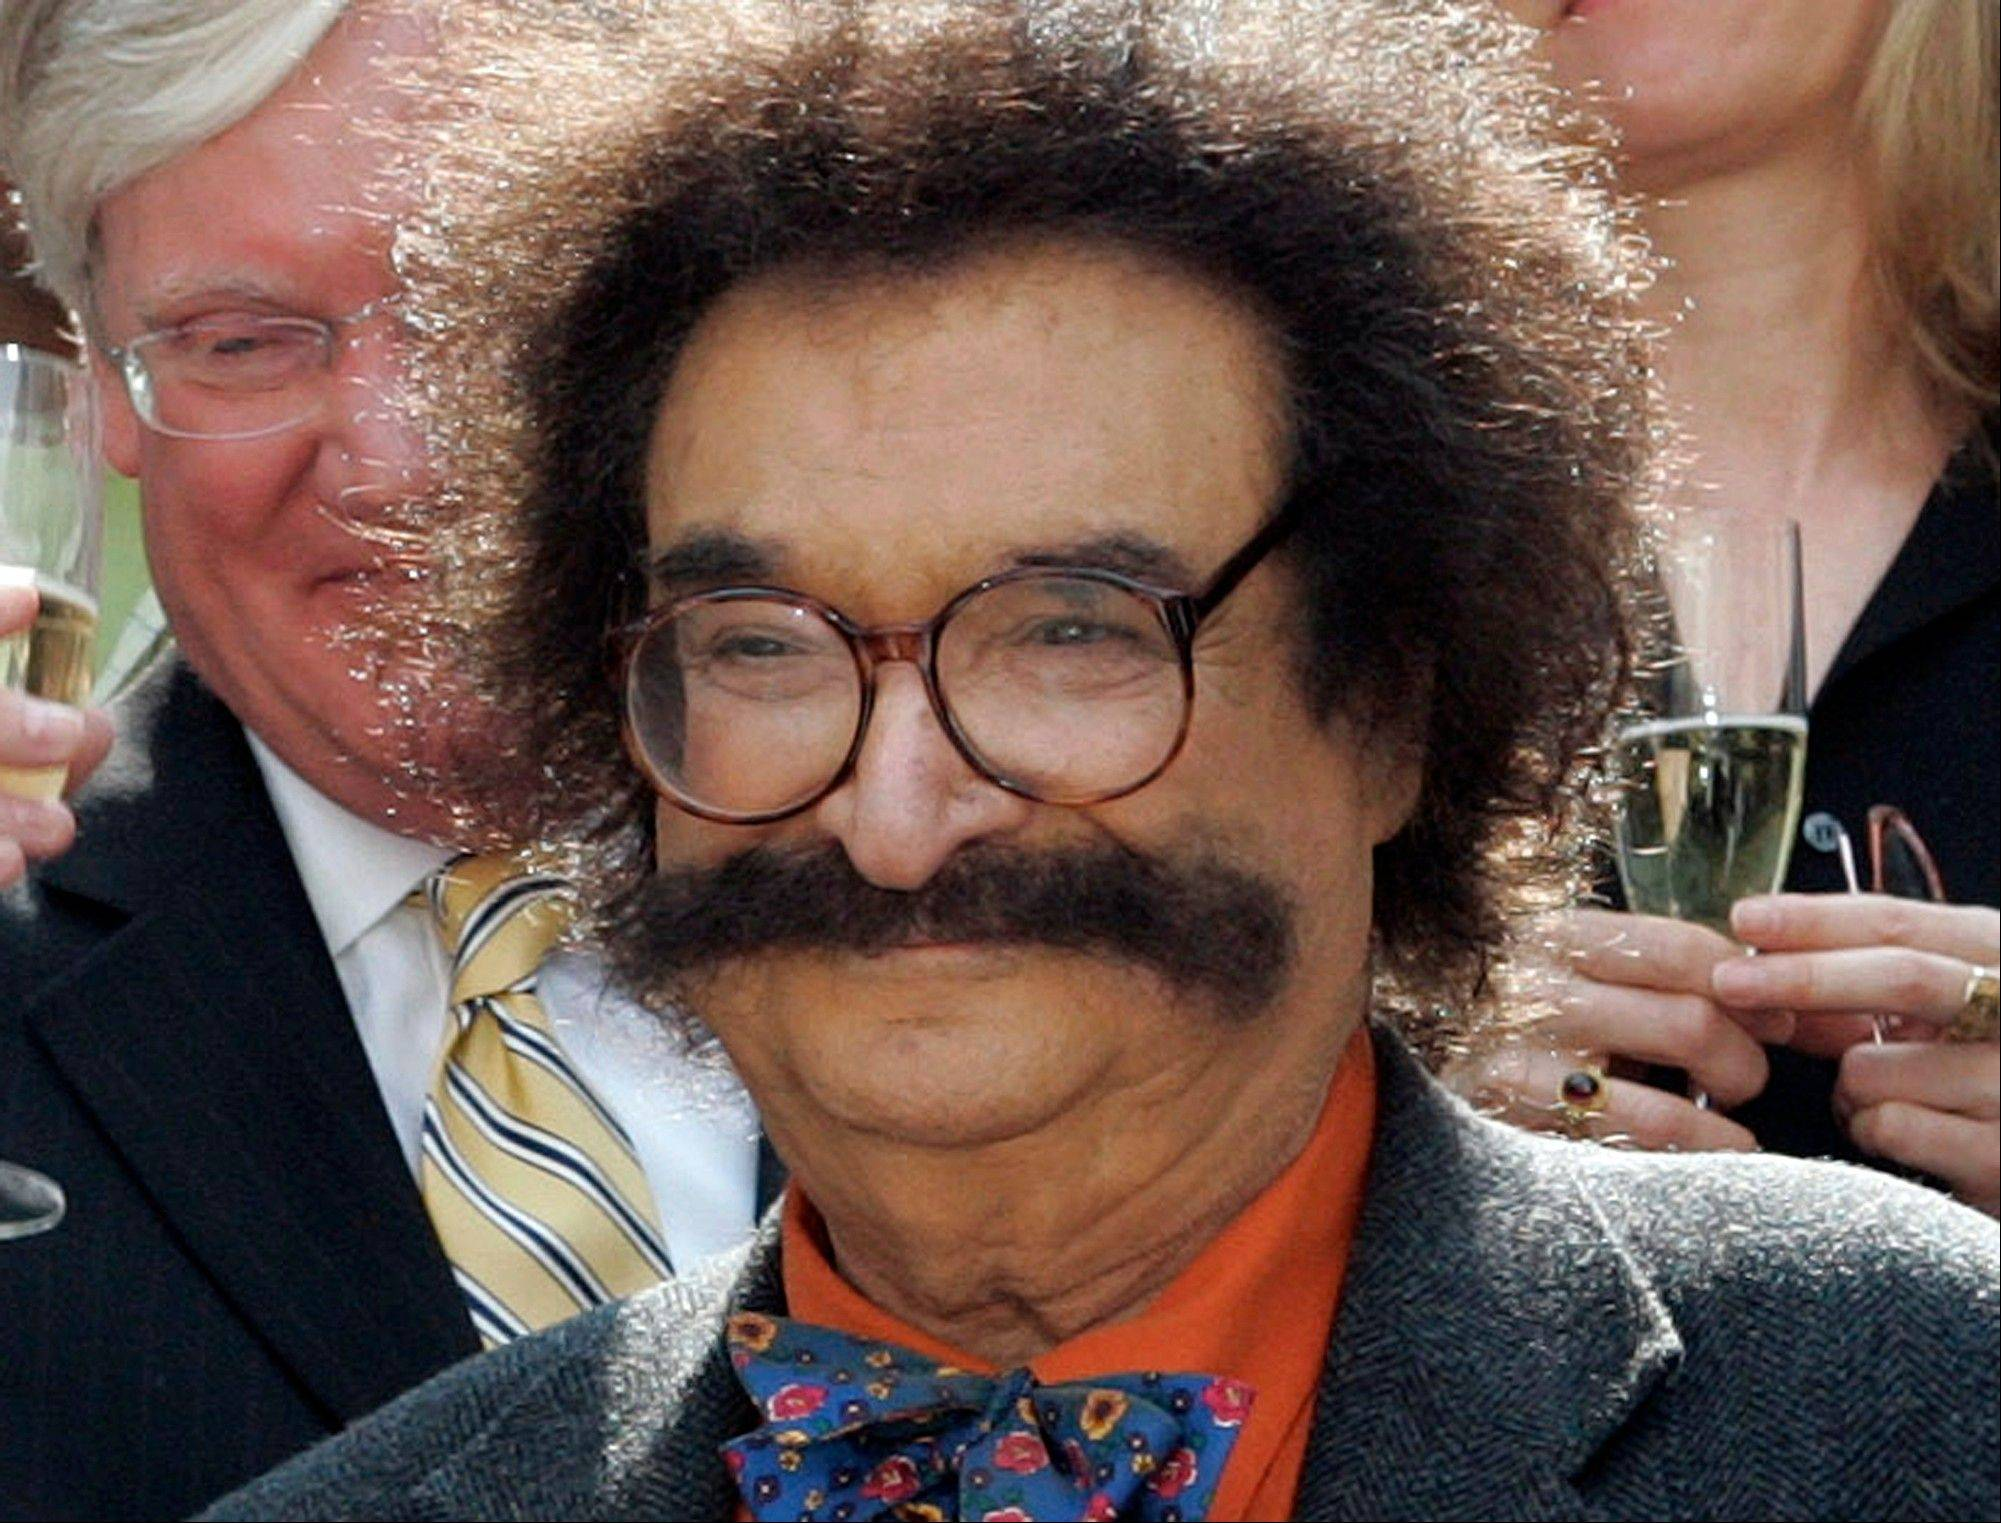 A misdemeanor driving charge against retired television movie critic Gene Shalit is set to be dismissed in Massachusetts. The hearing was continued to April 2, when the driving to endanger charge will be dismissed.